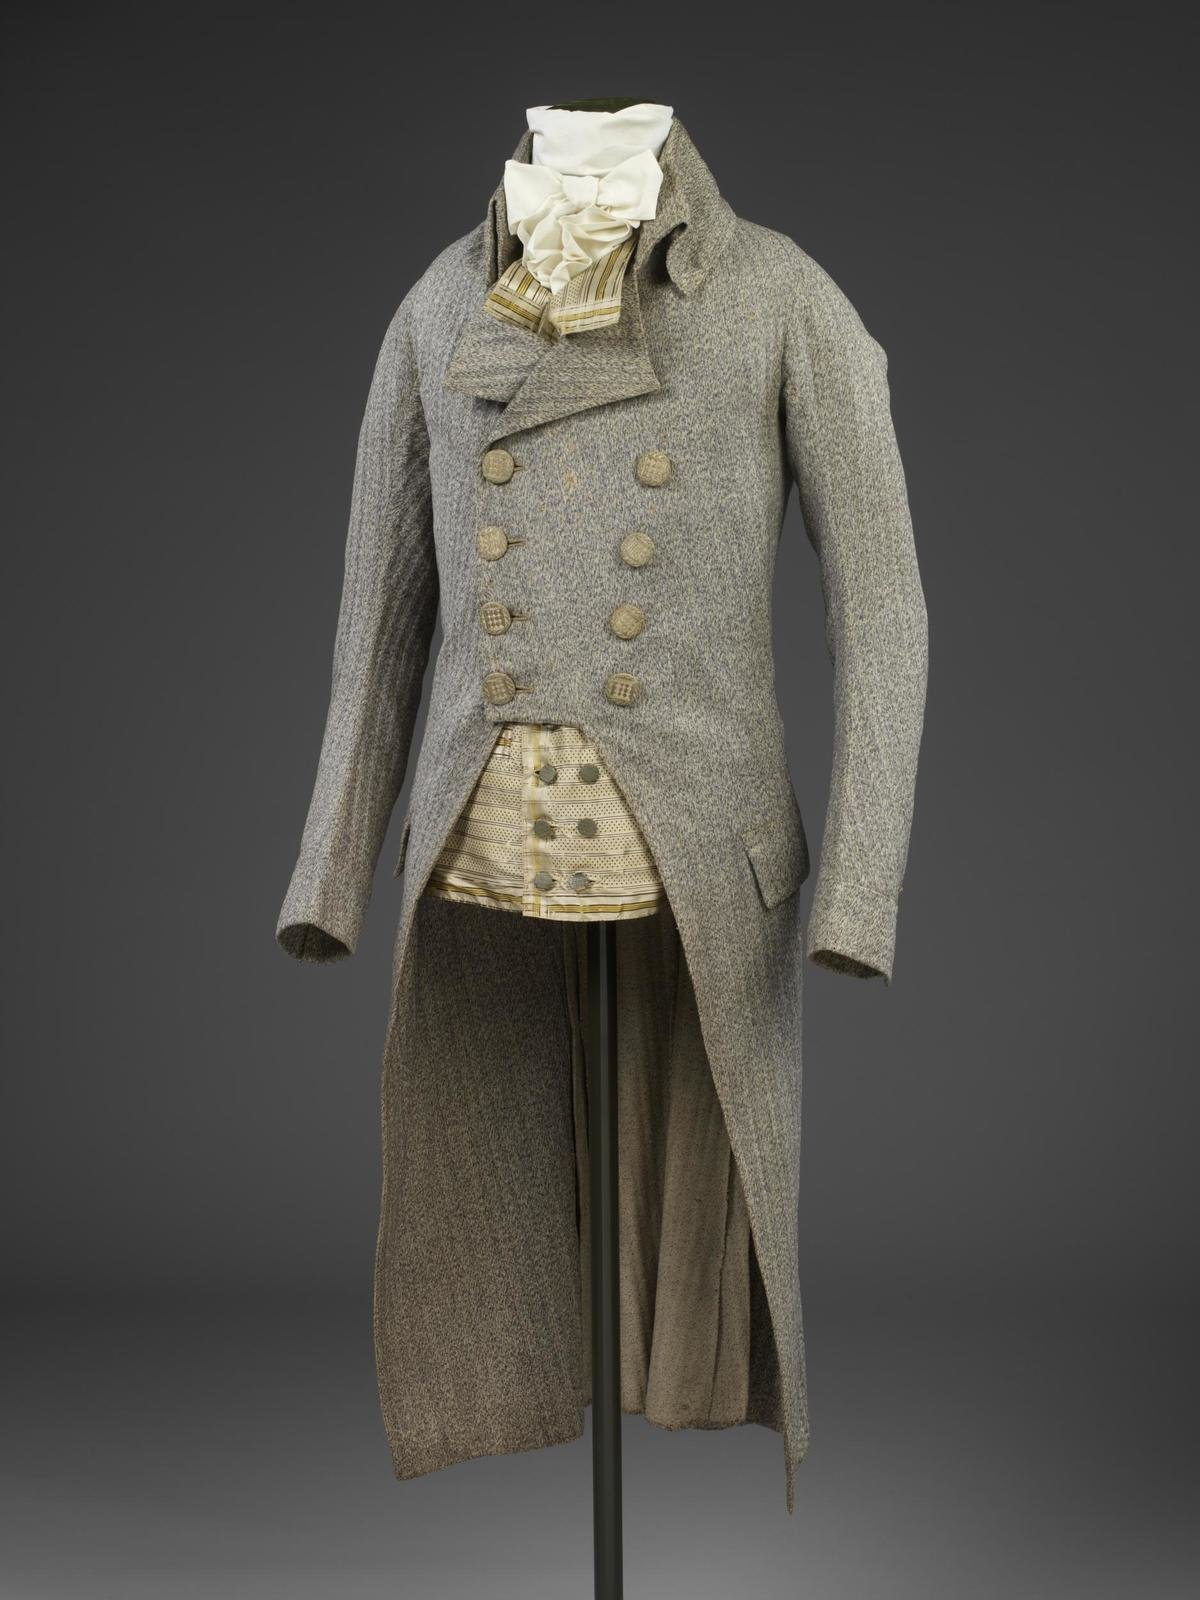 Man's frock coat of wool, England, 1790, unknown, Victoria & Albert Museum, CC BY-SA